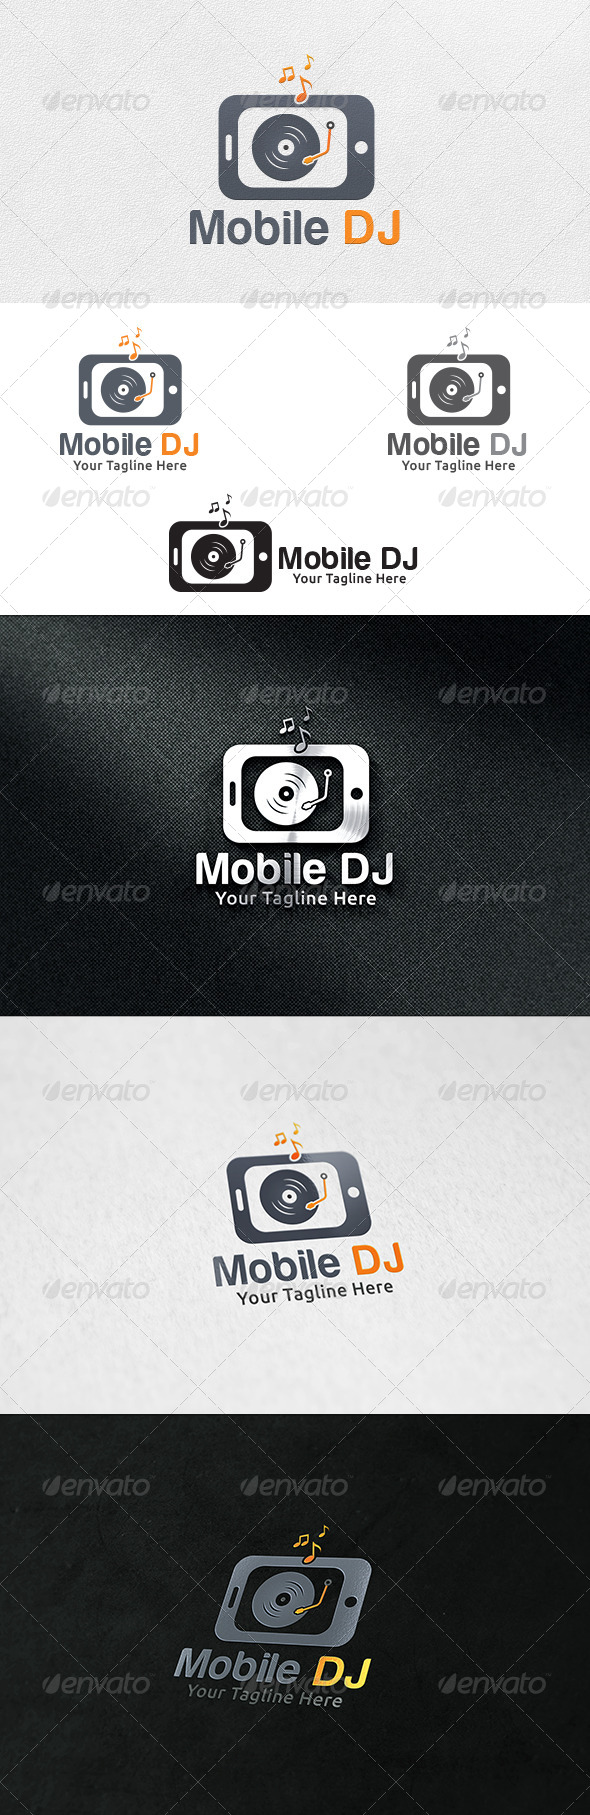 GraphicRiver Mobile DJ Logo Template 6789410